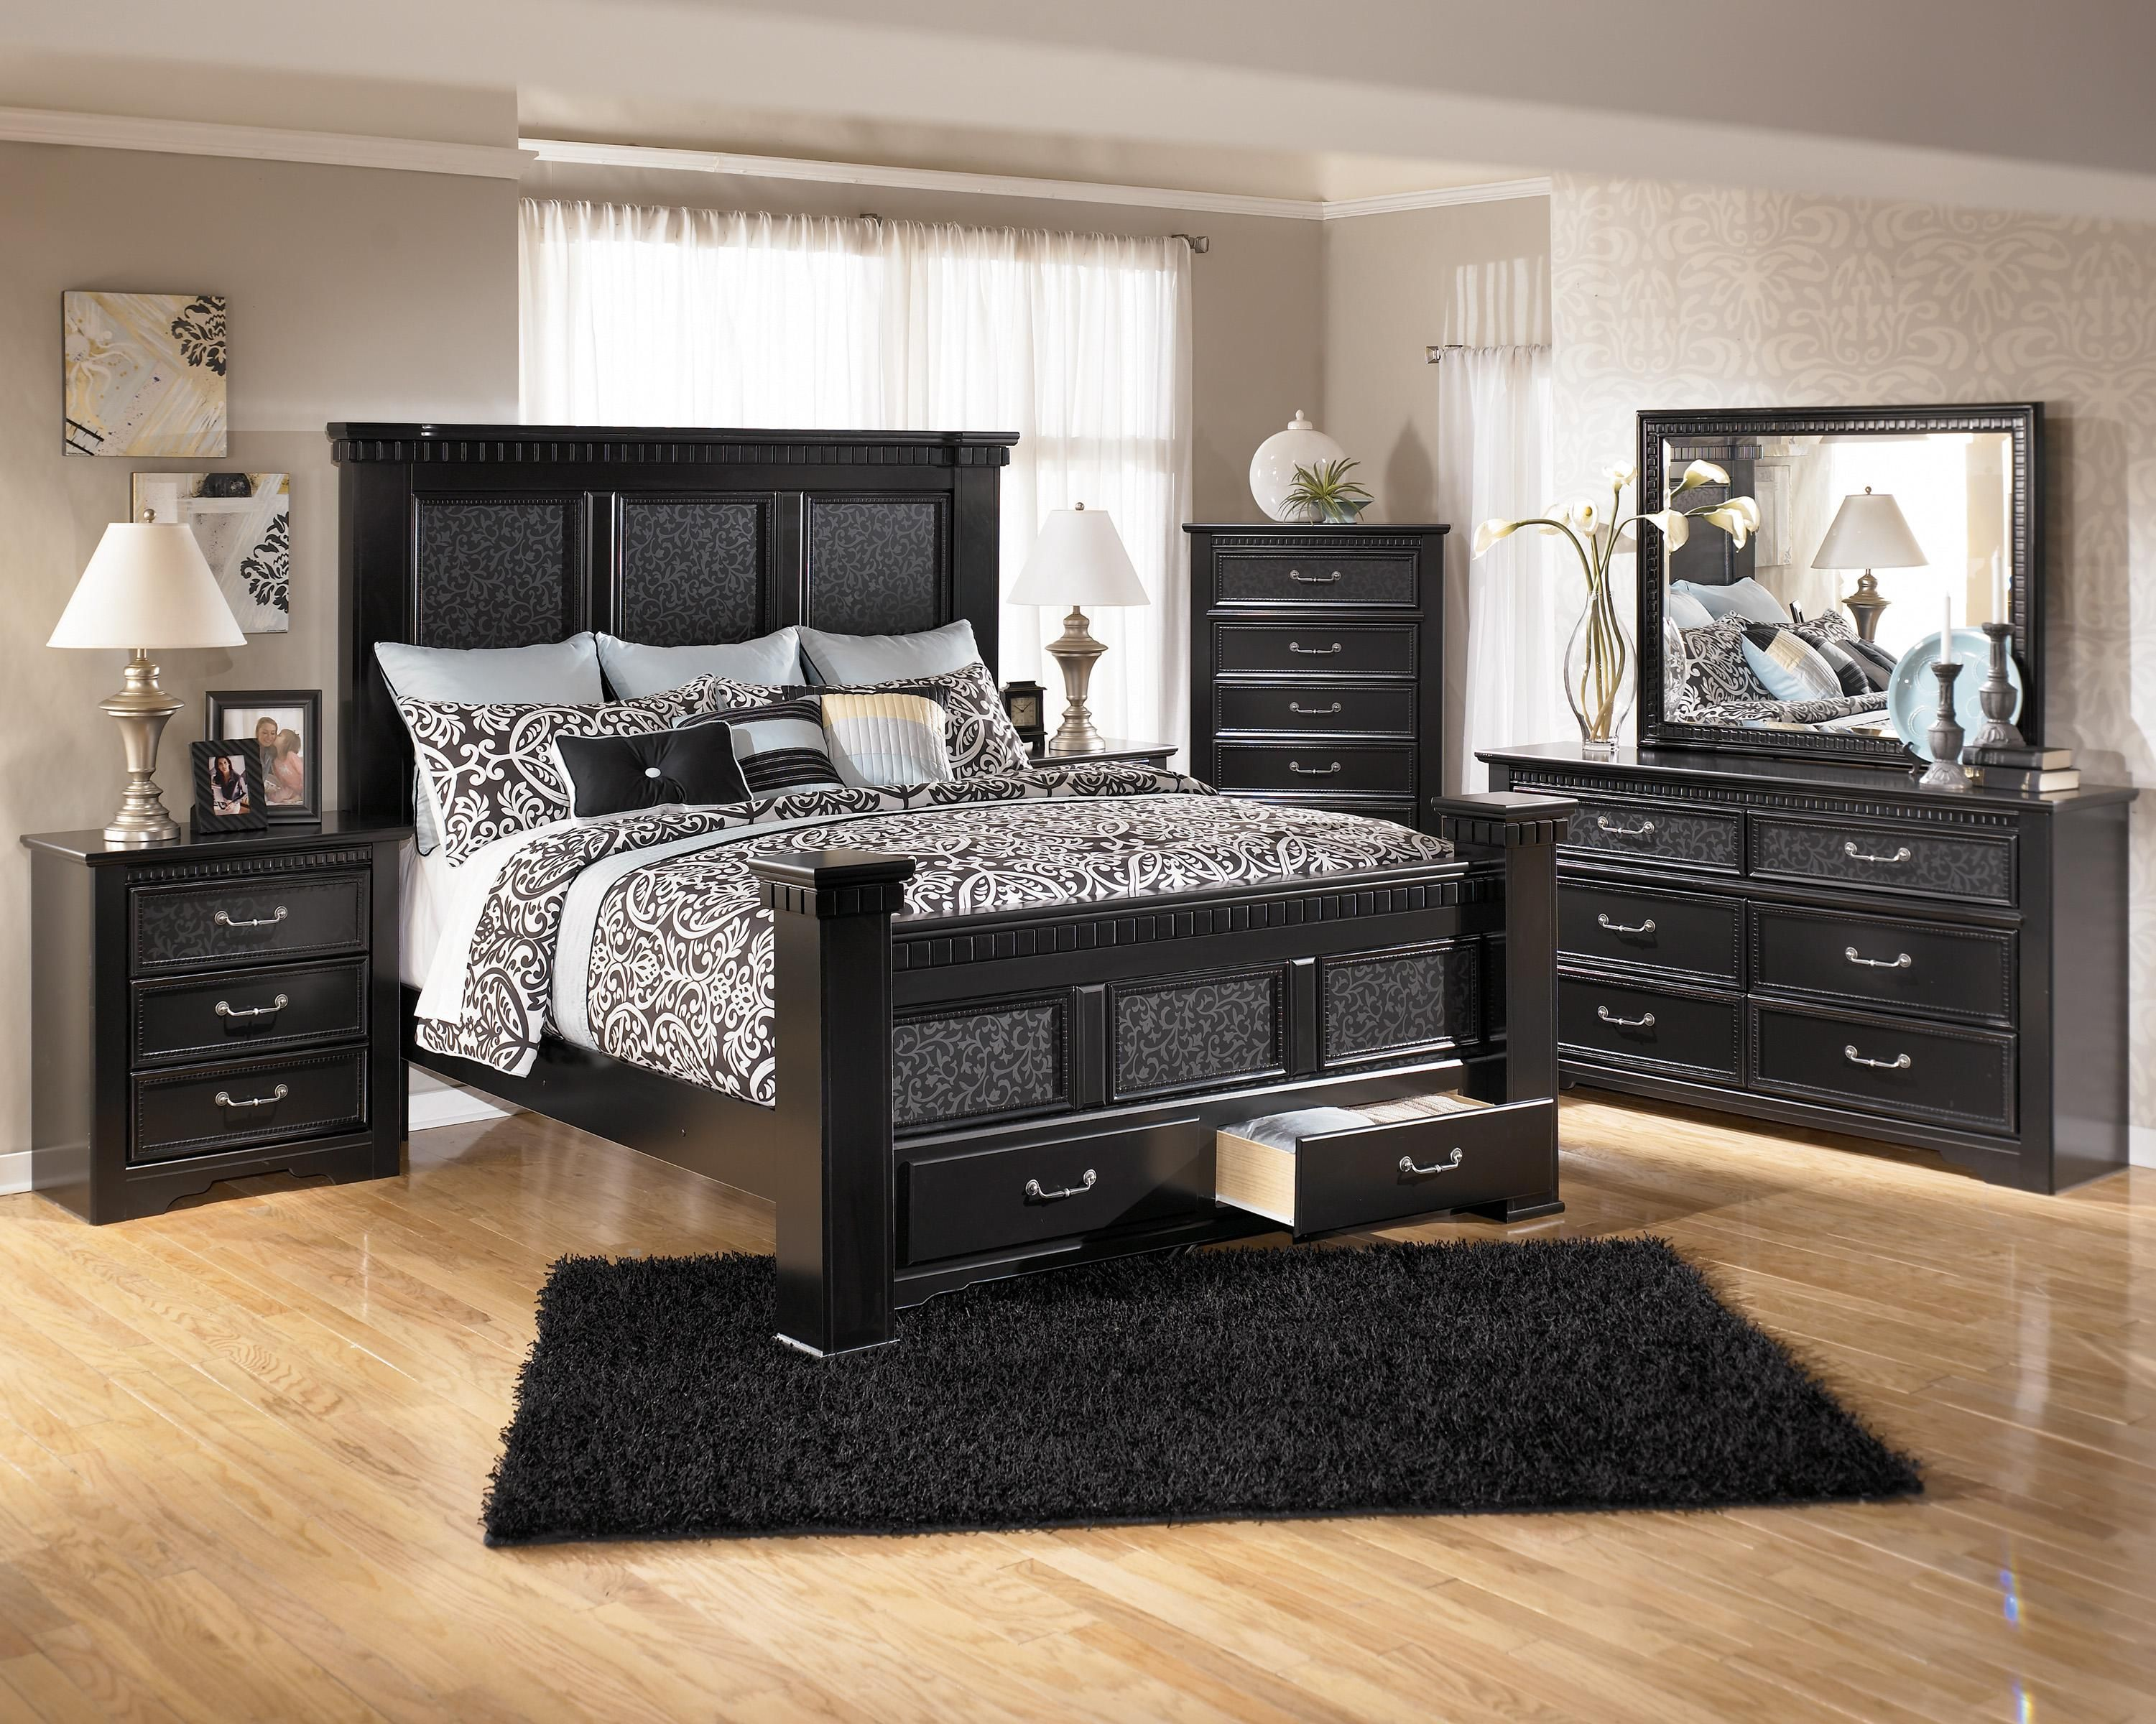 1000 Ideas About King Bedroom Sets On Pinterest King Bedroom